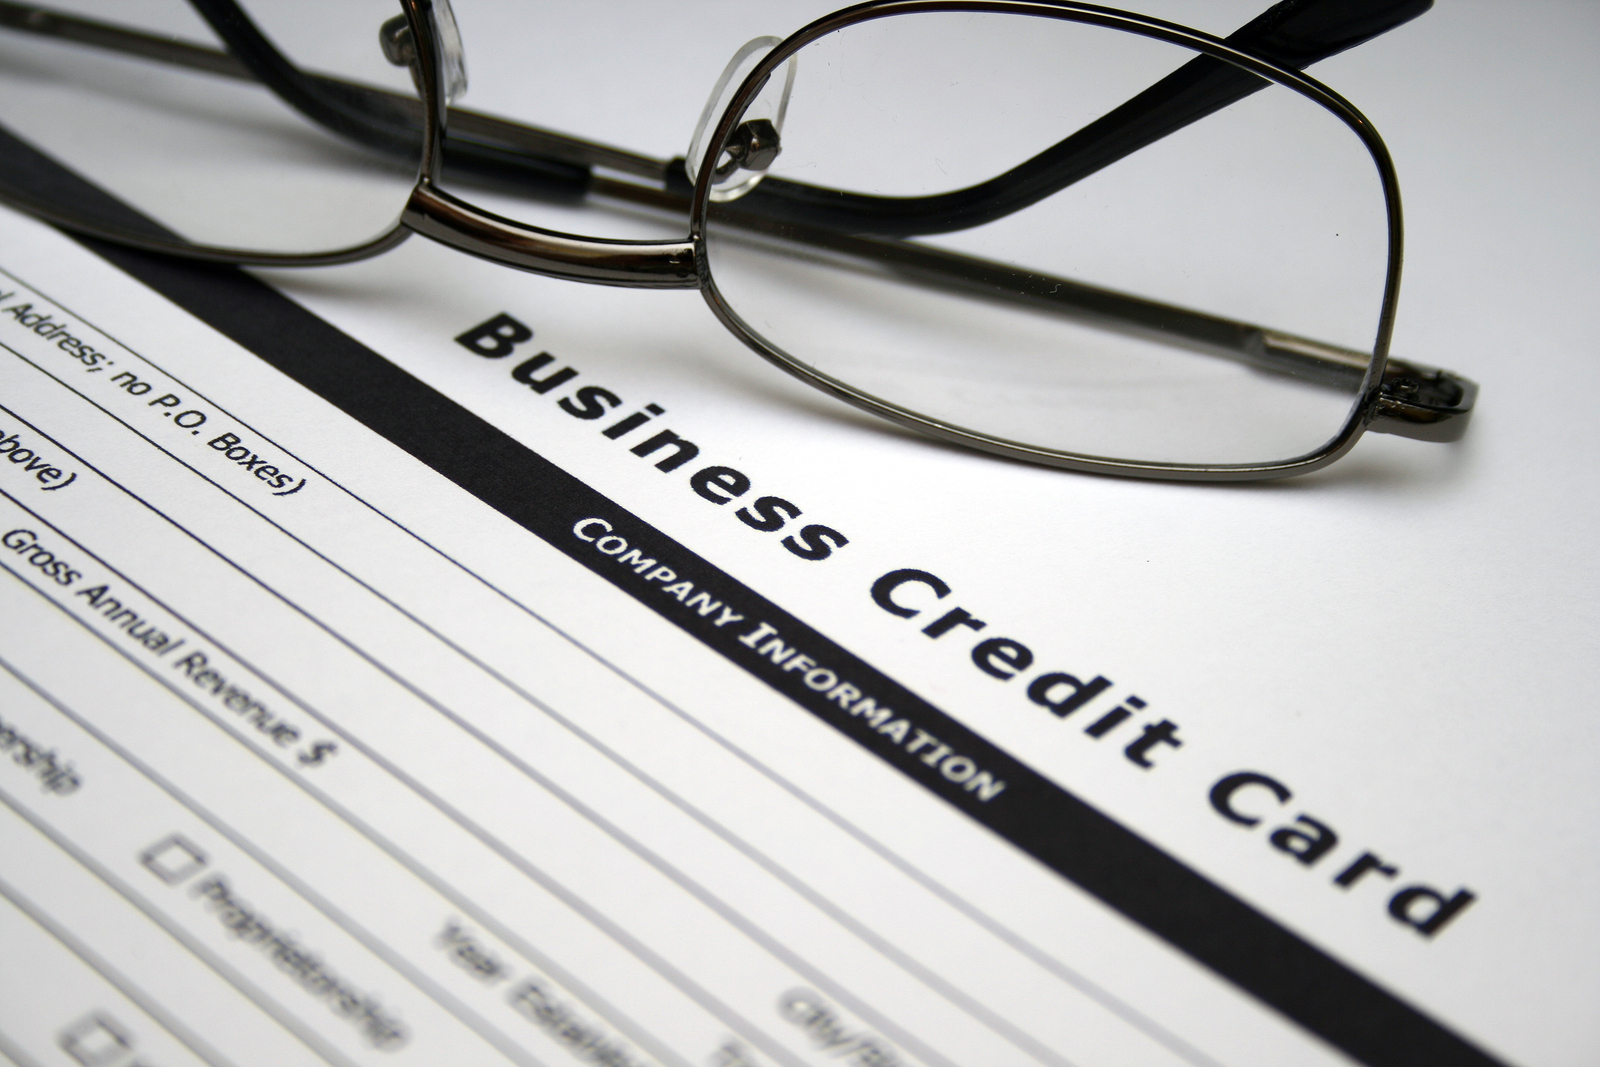 Are Business Credit Cards Bad for Your Credit?